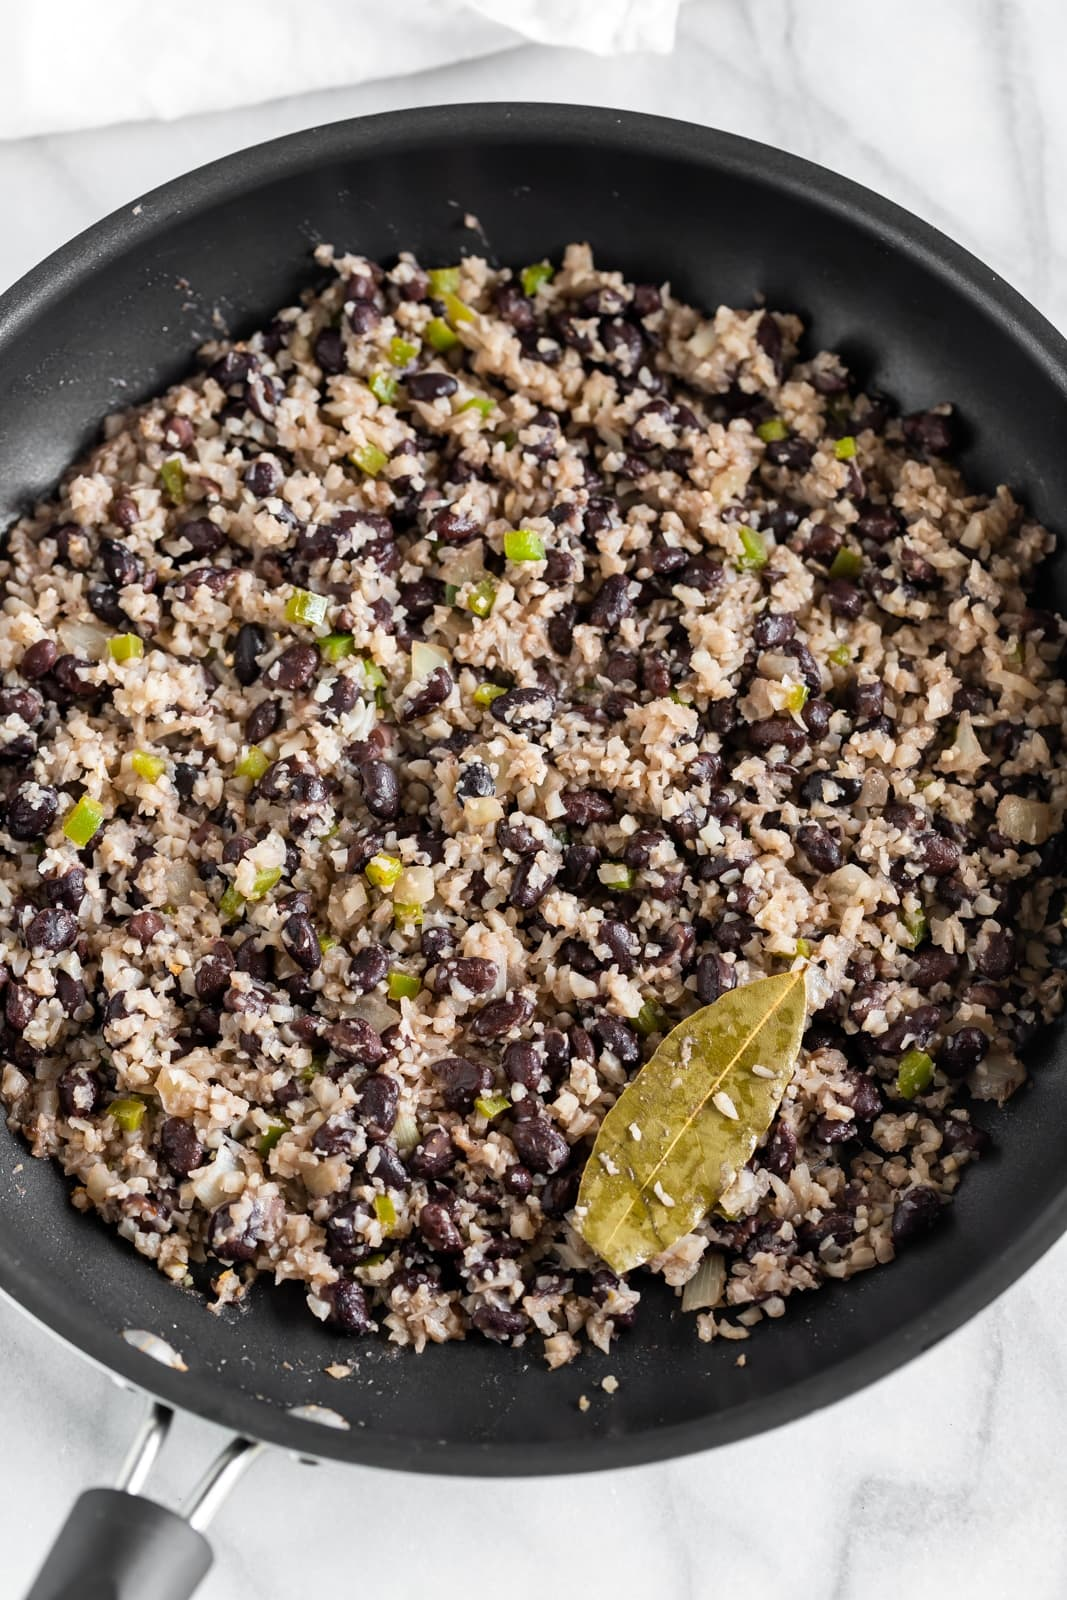 A healthy twist on the popular Cuban-style black beans and rice! A quick and easy weeknight dish made with riced cauliflower, cumin, oregano, and black beans. Pairs easily with salmon or chicken!